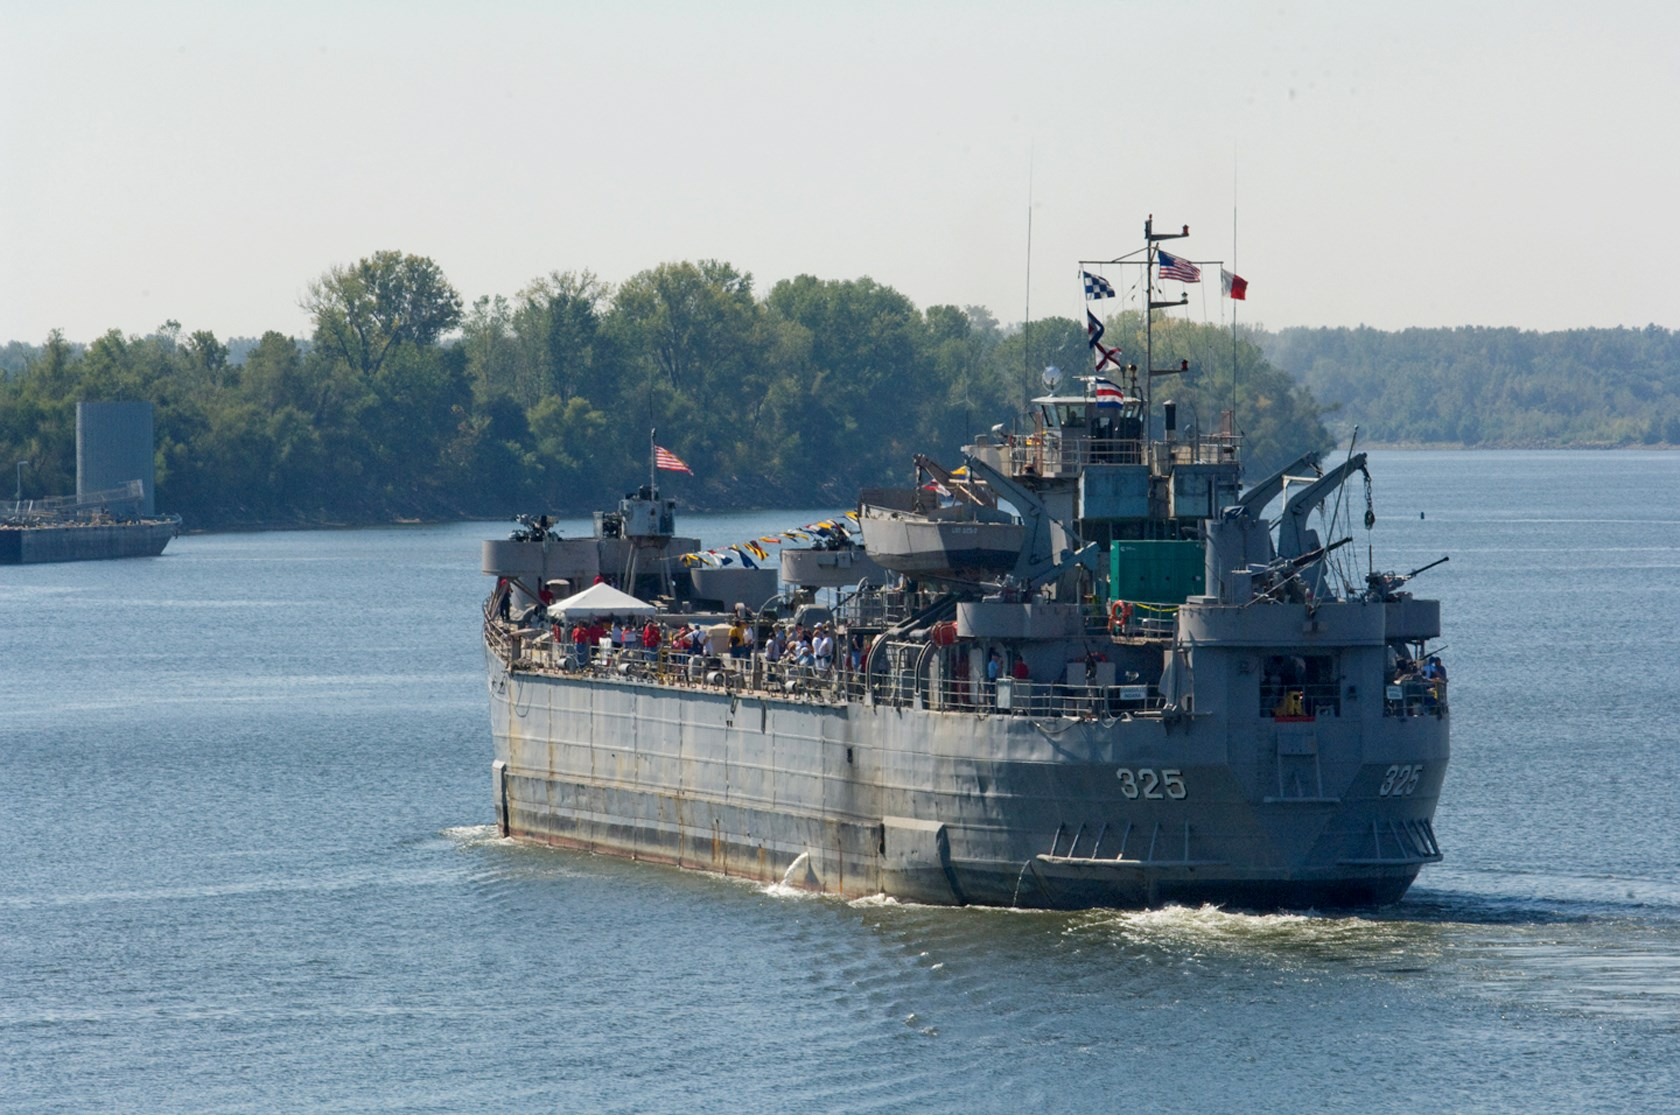 LST docking at museum